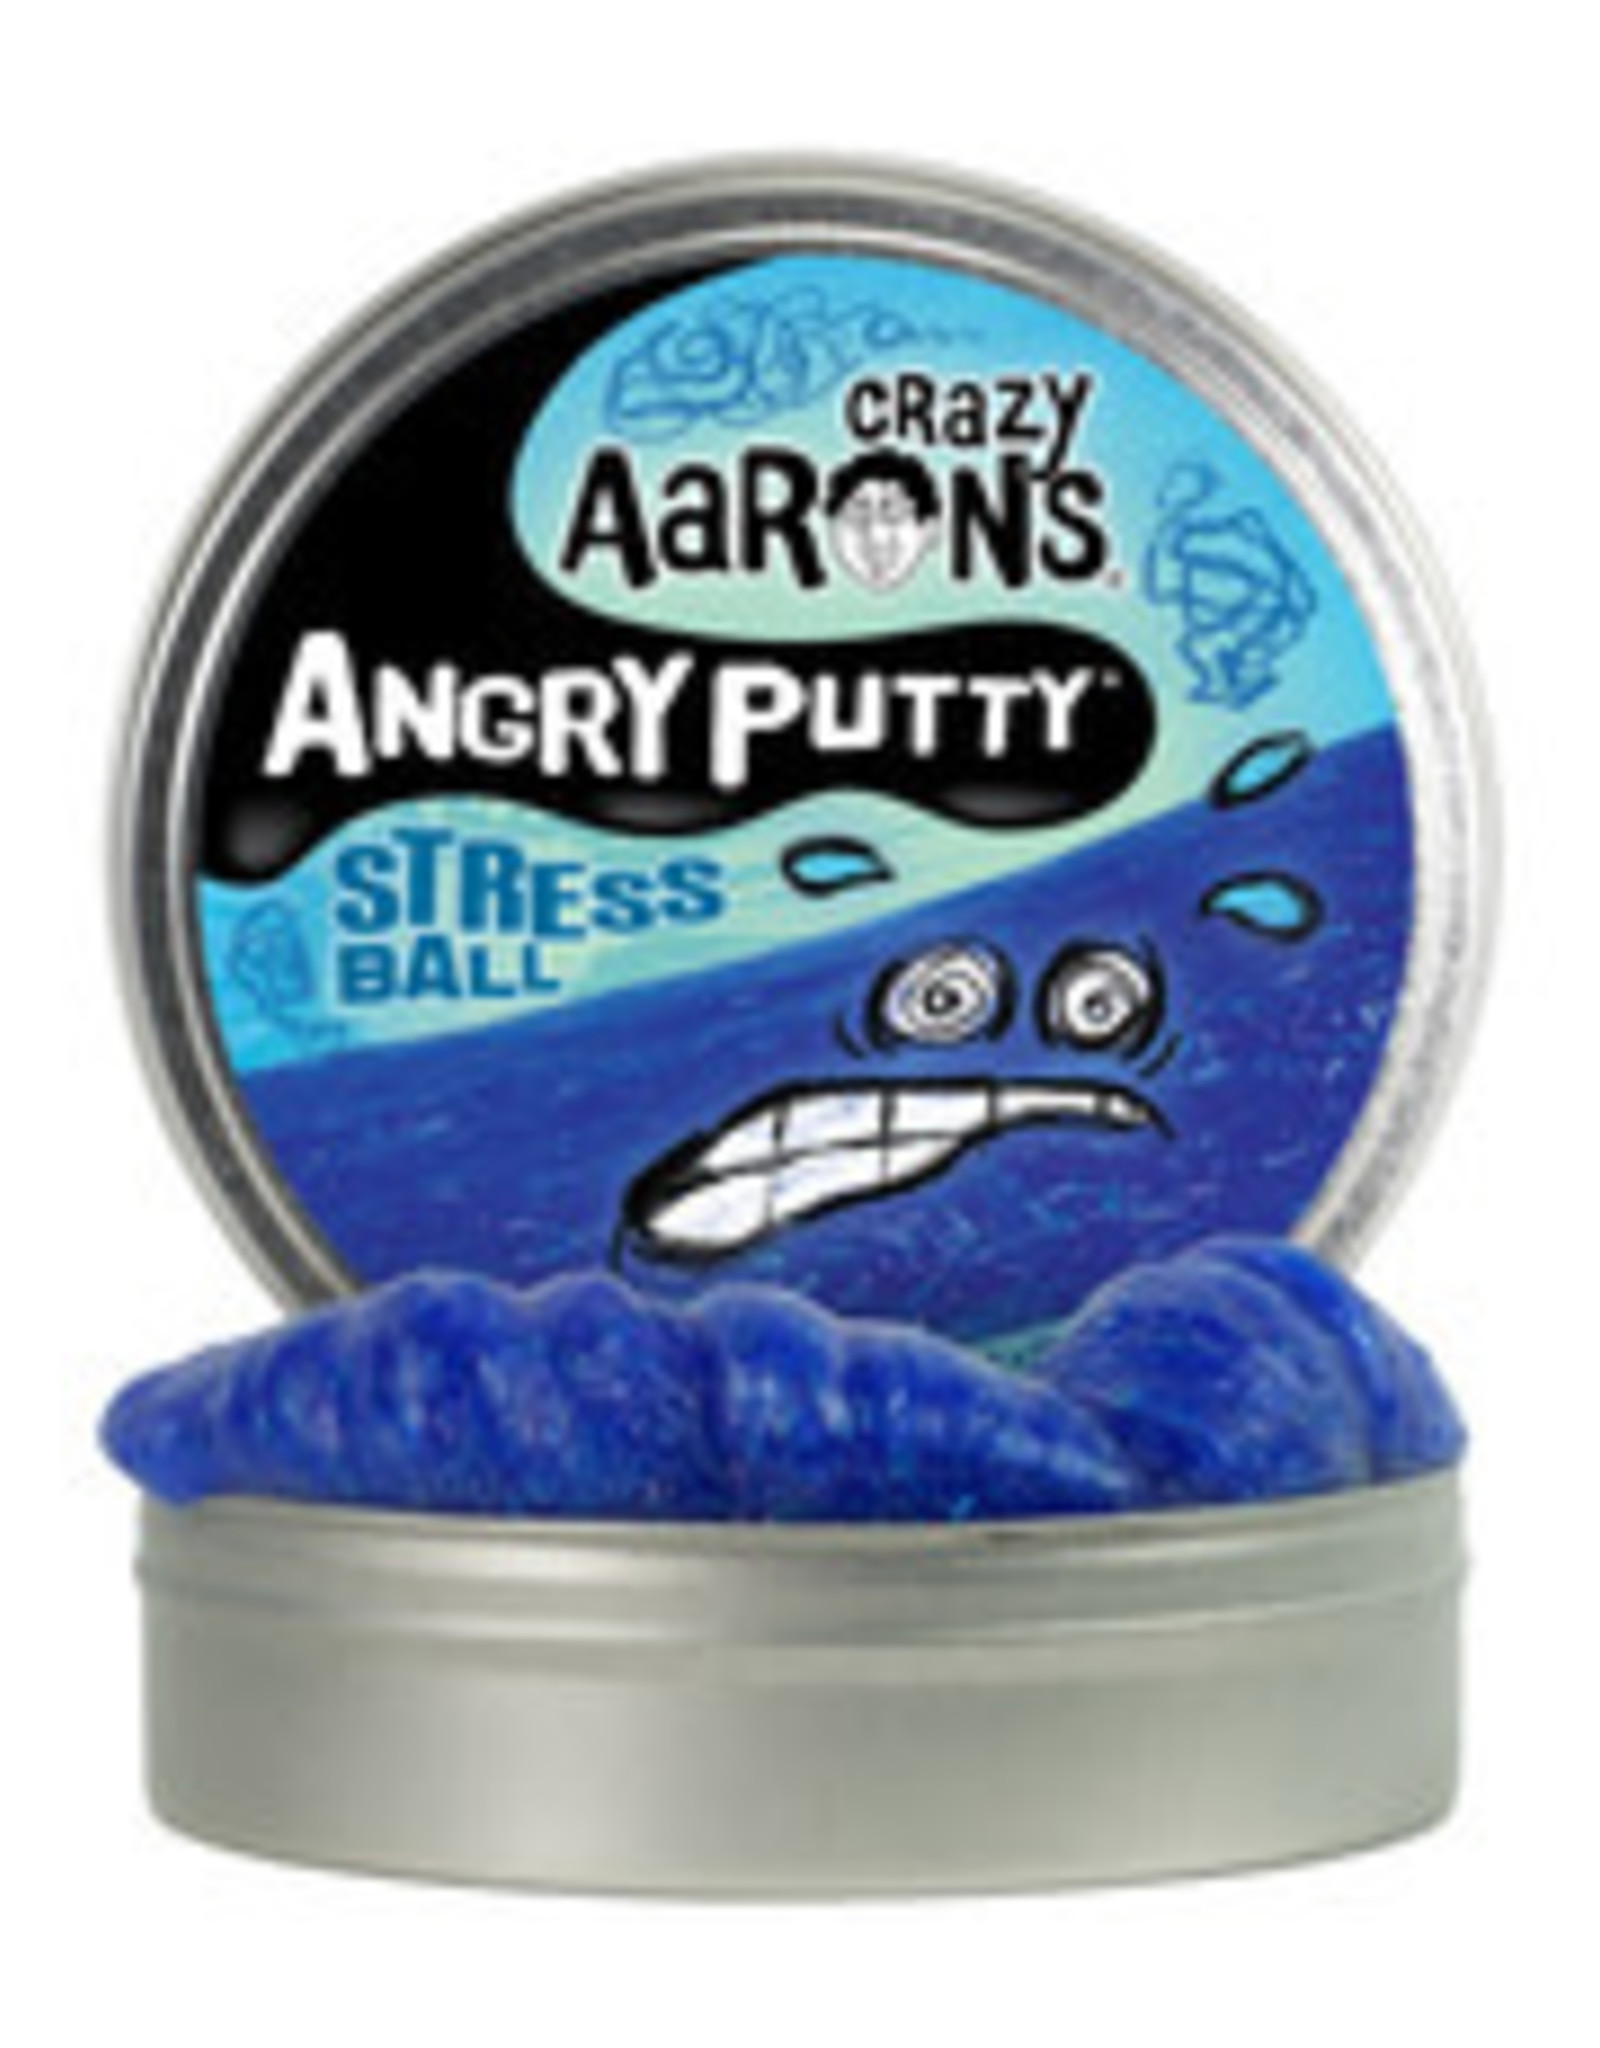 Crazy Aaron's Thinking Putty 4'' Angry Putty - Stress Ball